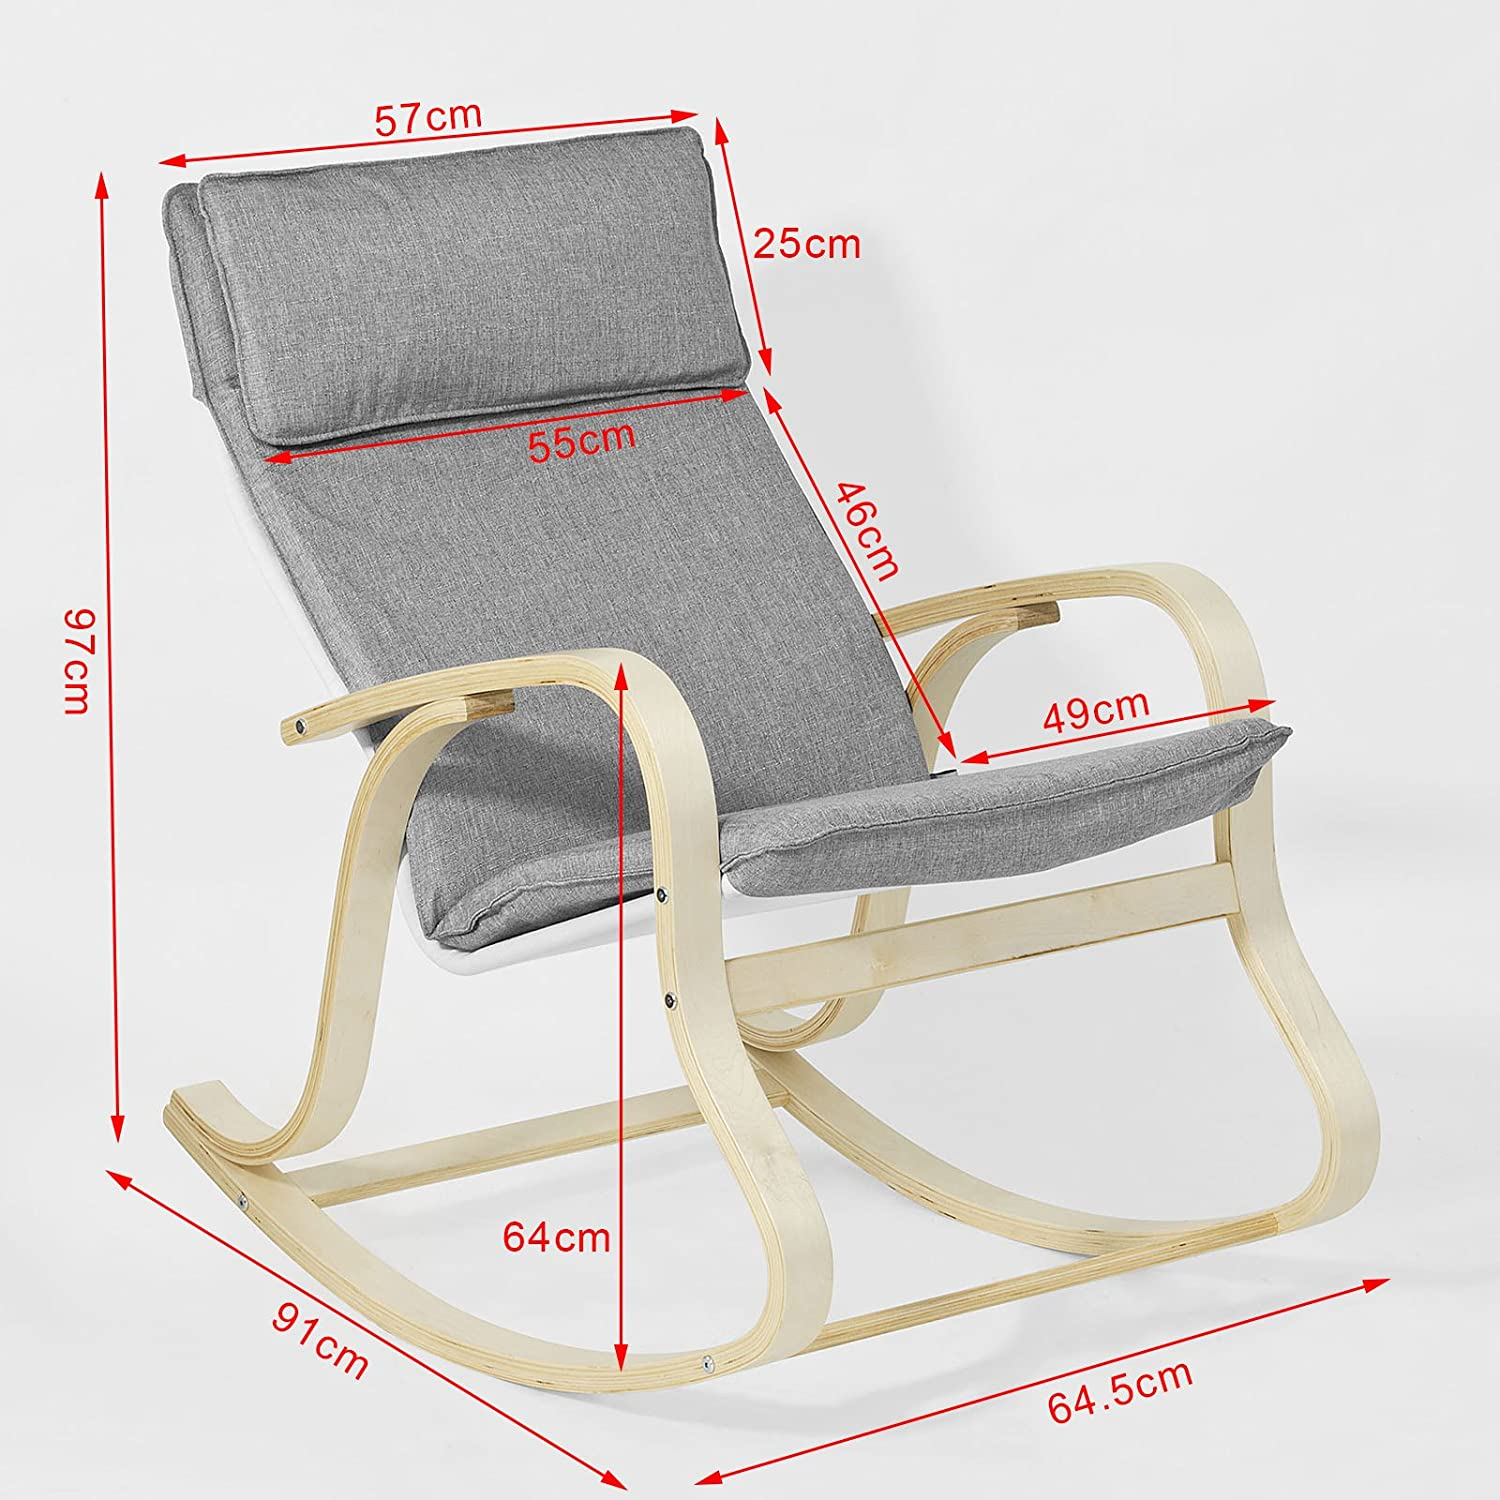 SoBuy Relax Rocking Chair,Lounge Chair Recliners with Removable Fabric Cushion,FST15-DG